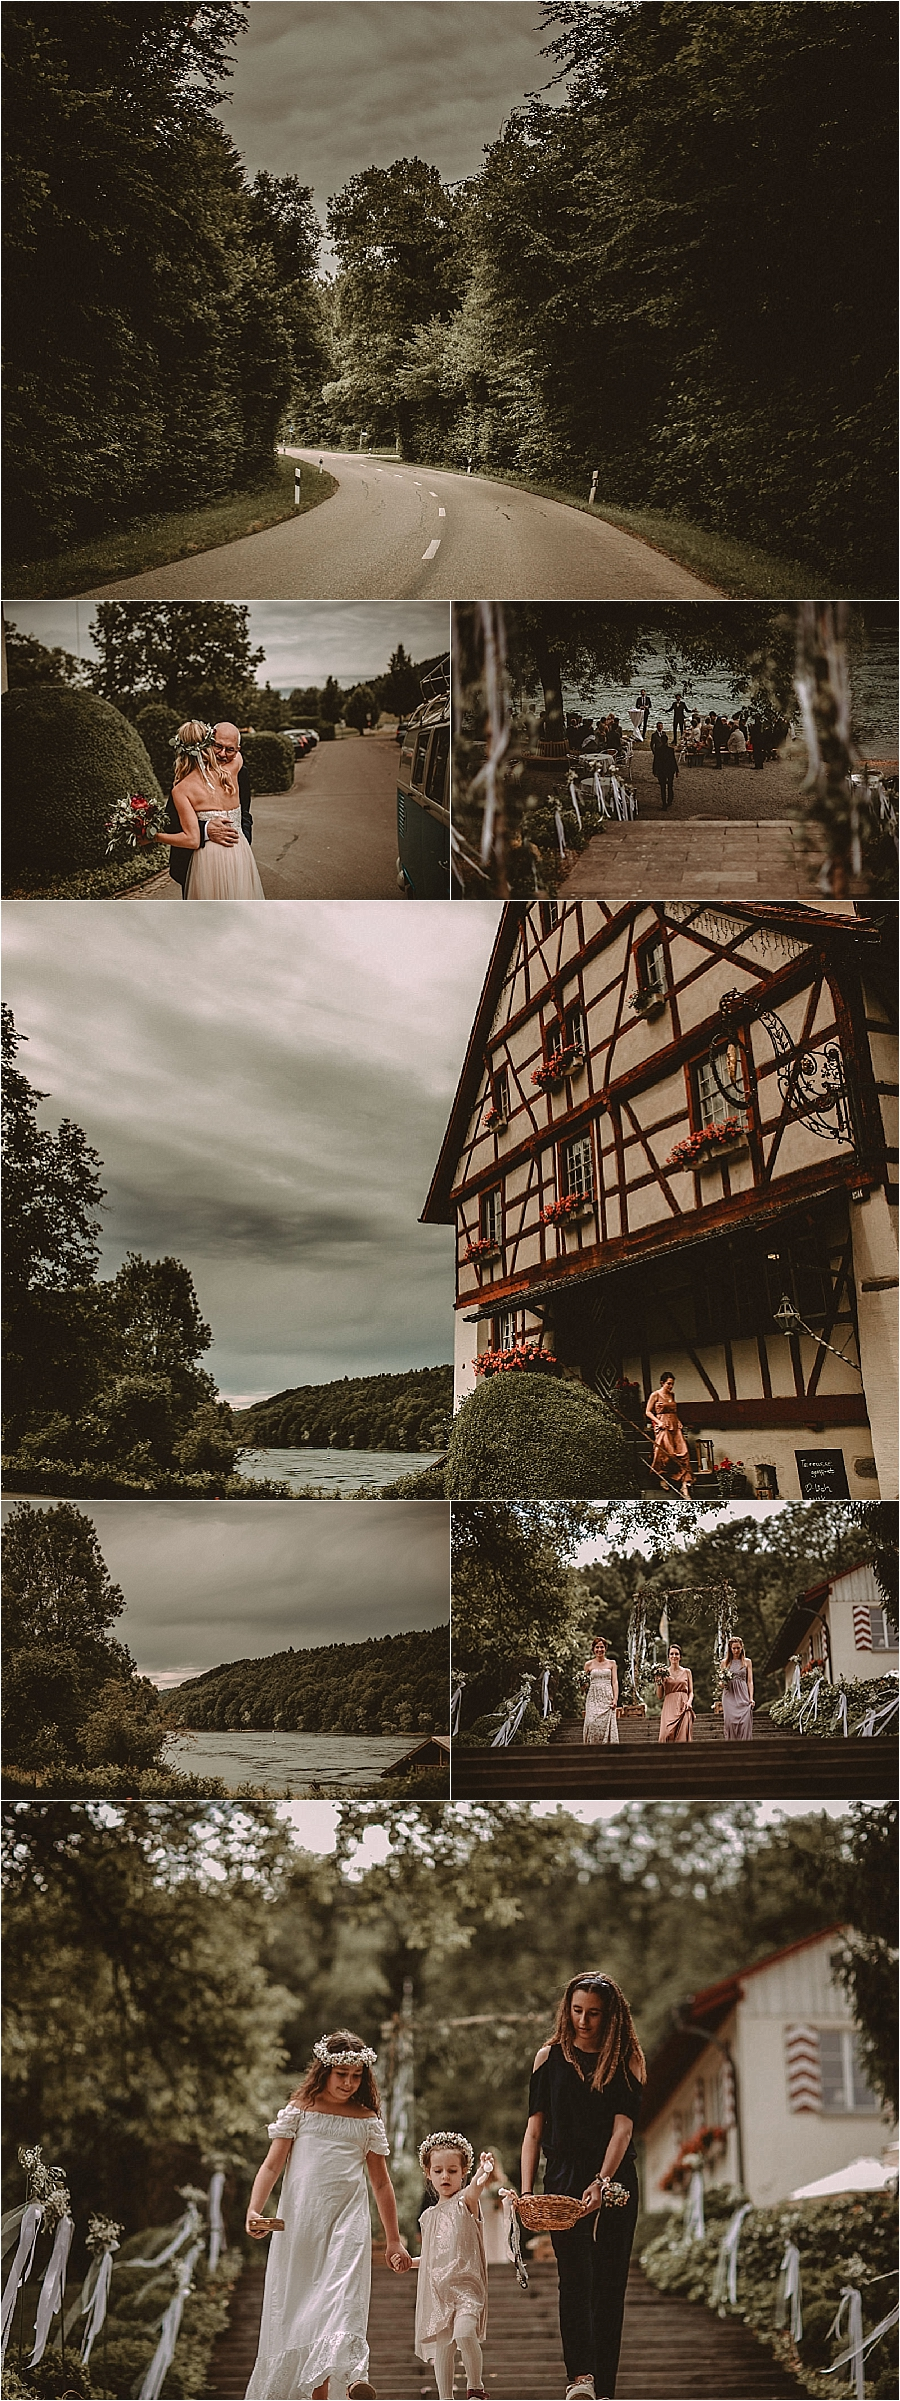 A riverside wedding ceremony at Gasthaus Schupfen on the river Rhine in Switzerland by Bring Me Somewhere Nice